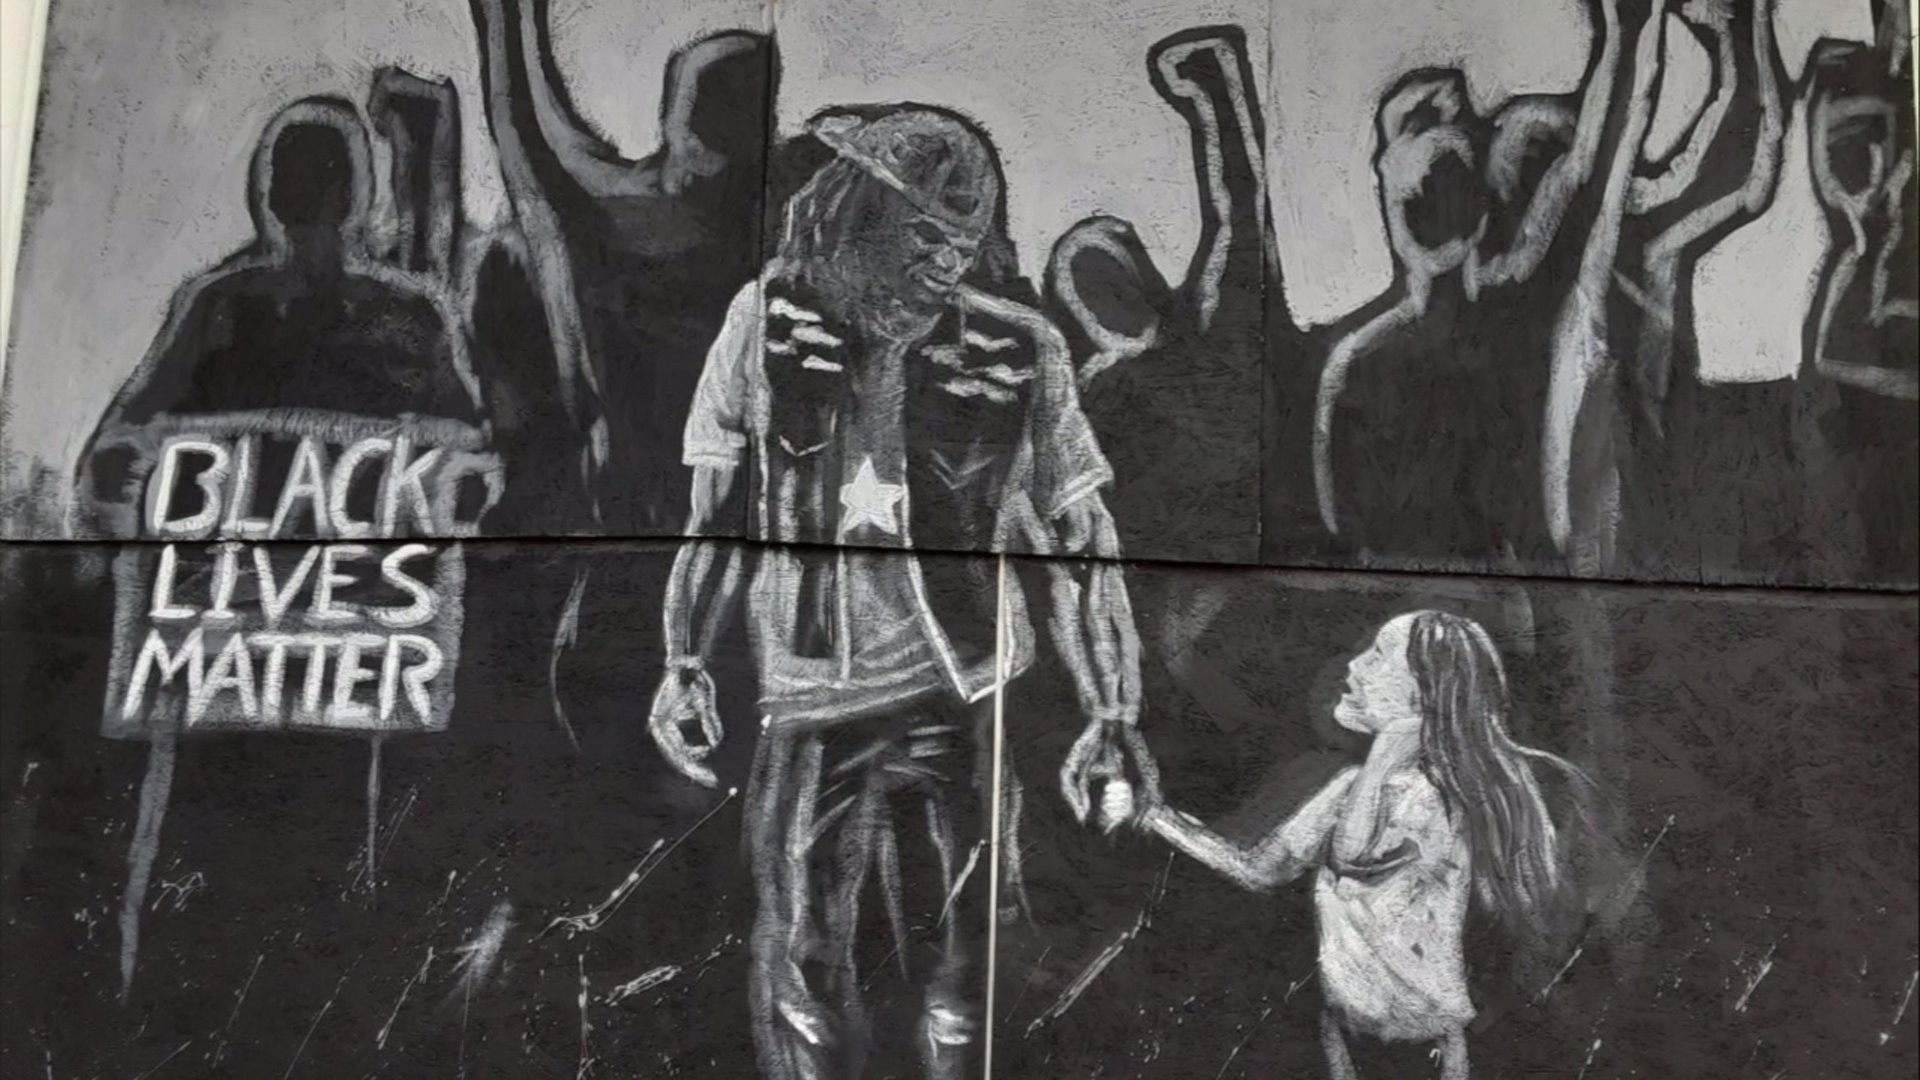 Greensboro History Musem to highlight street art that stemmed from civil unrest